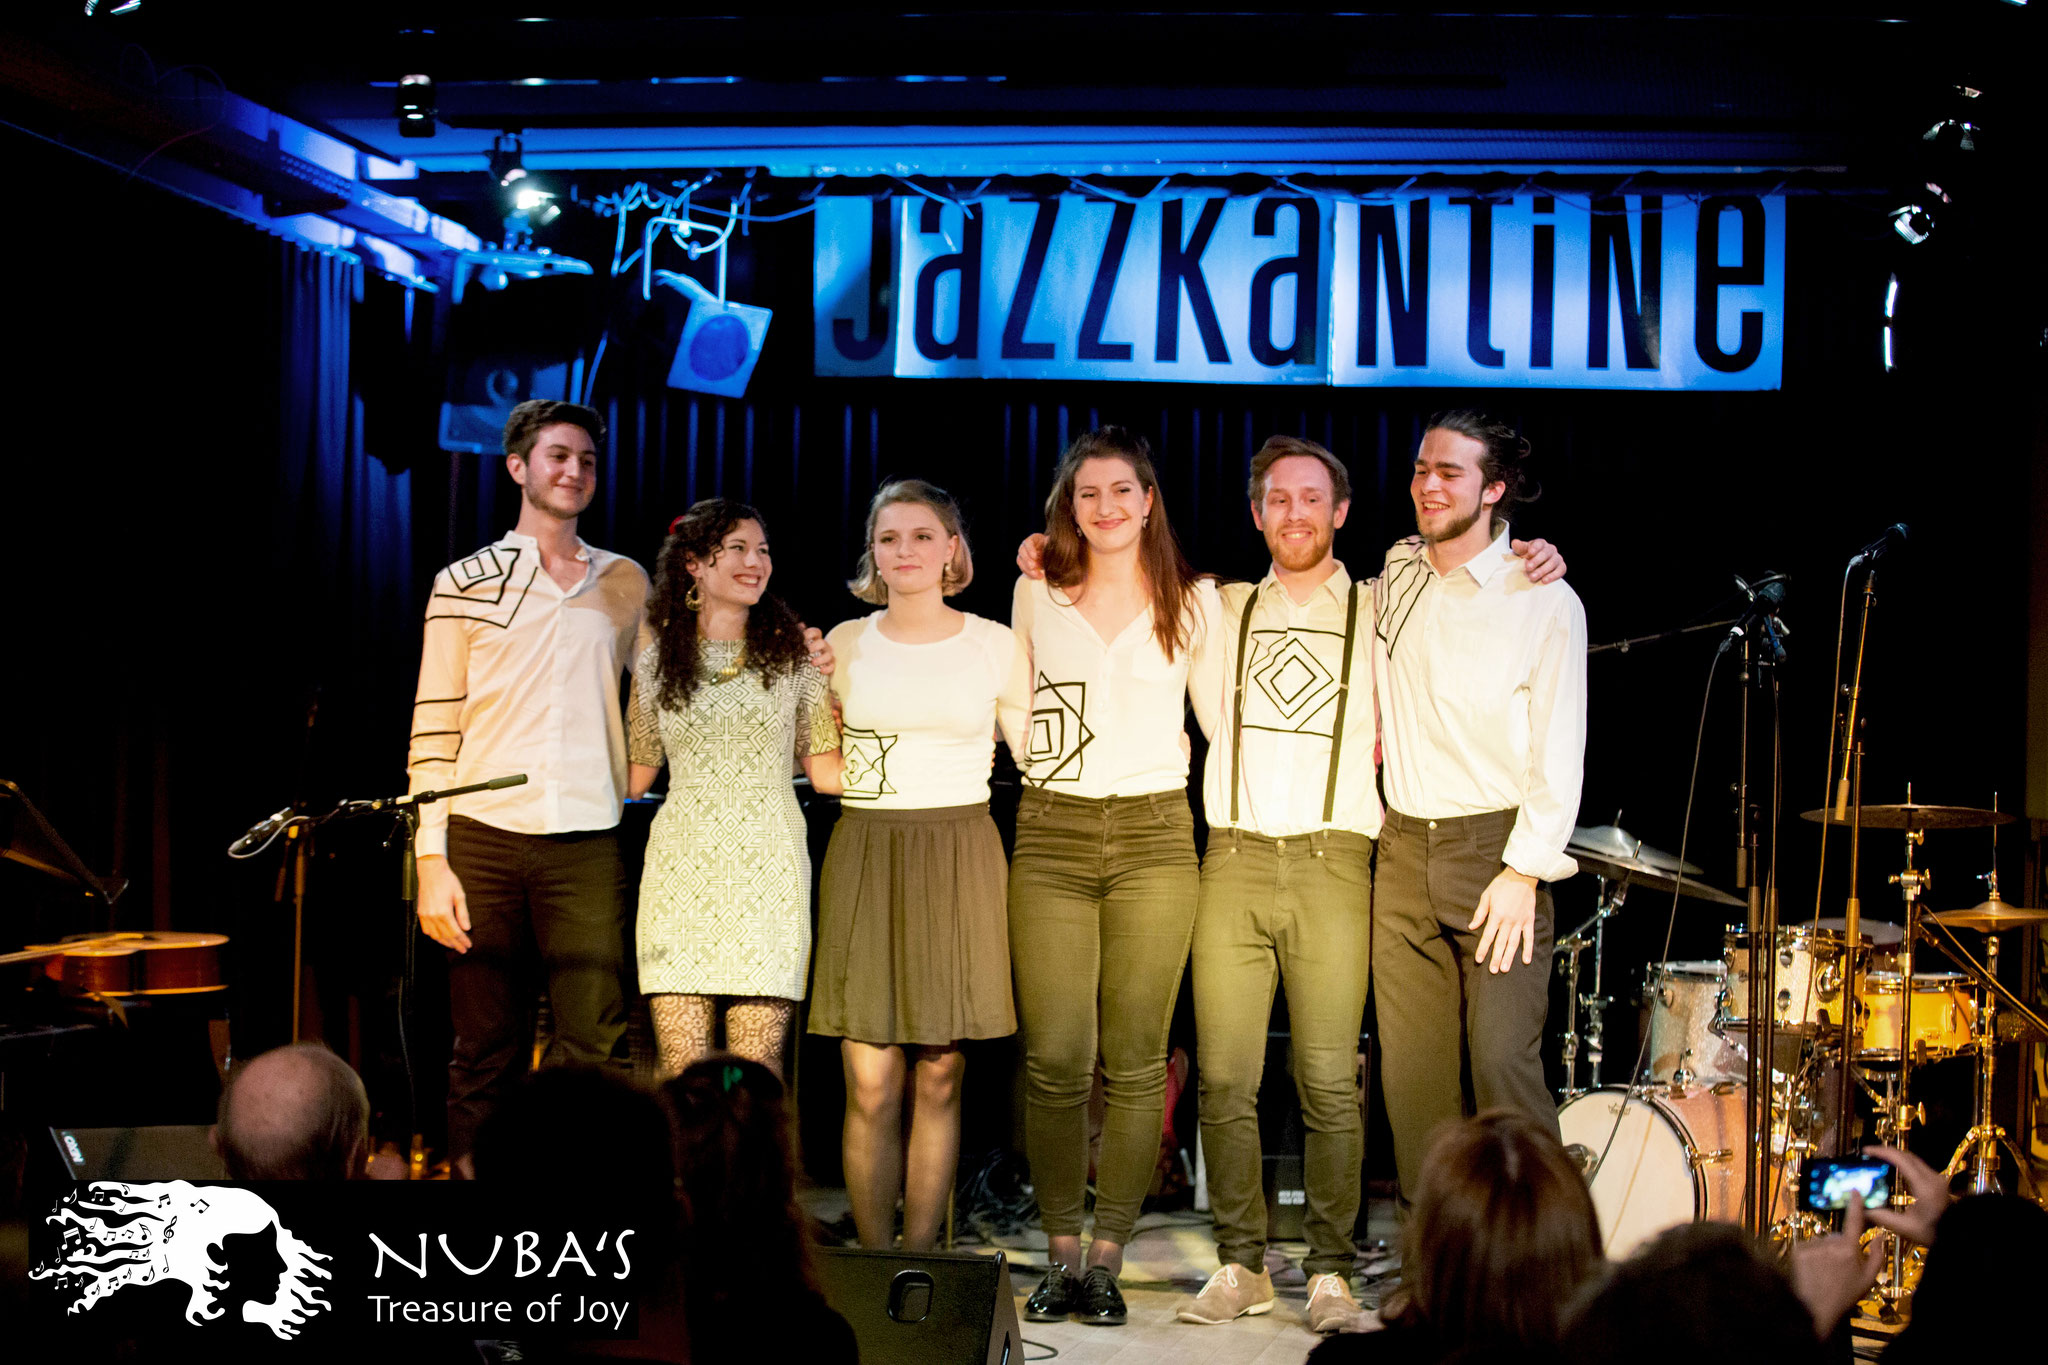 Nuba's Treasure of Joy, Jazzkantine Luzern, 17.03.16